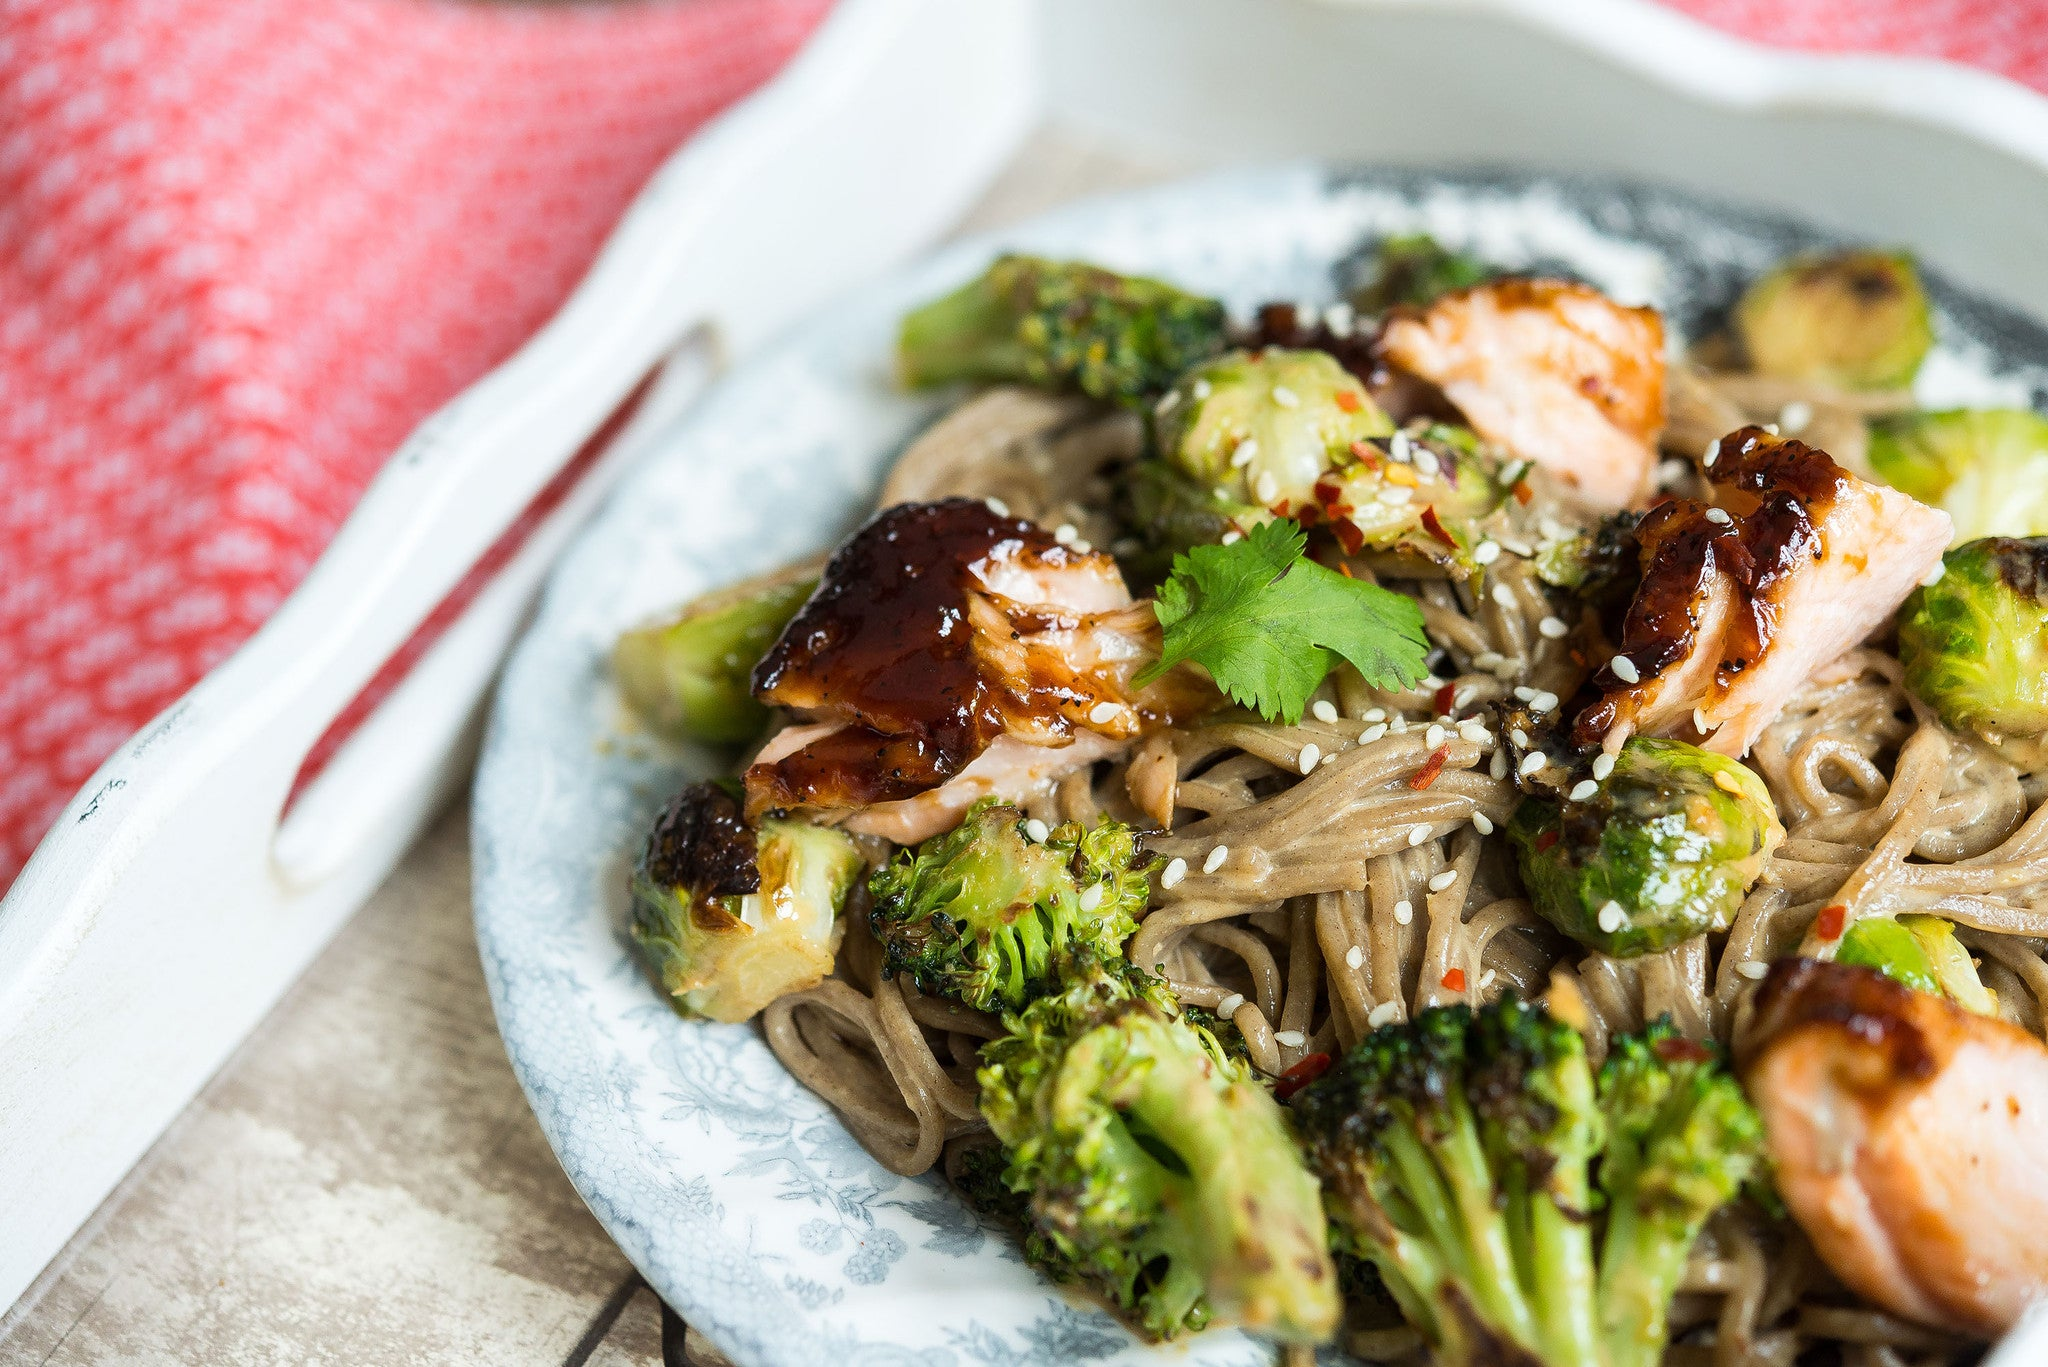 Hoisin Glazed Salmon, Tofu or Chicken & Veggies over Soba Noodles ...